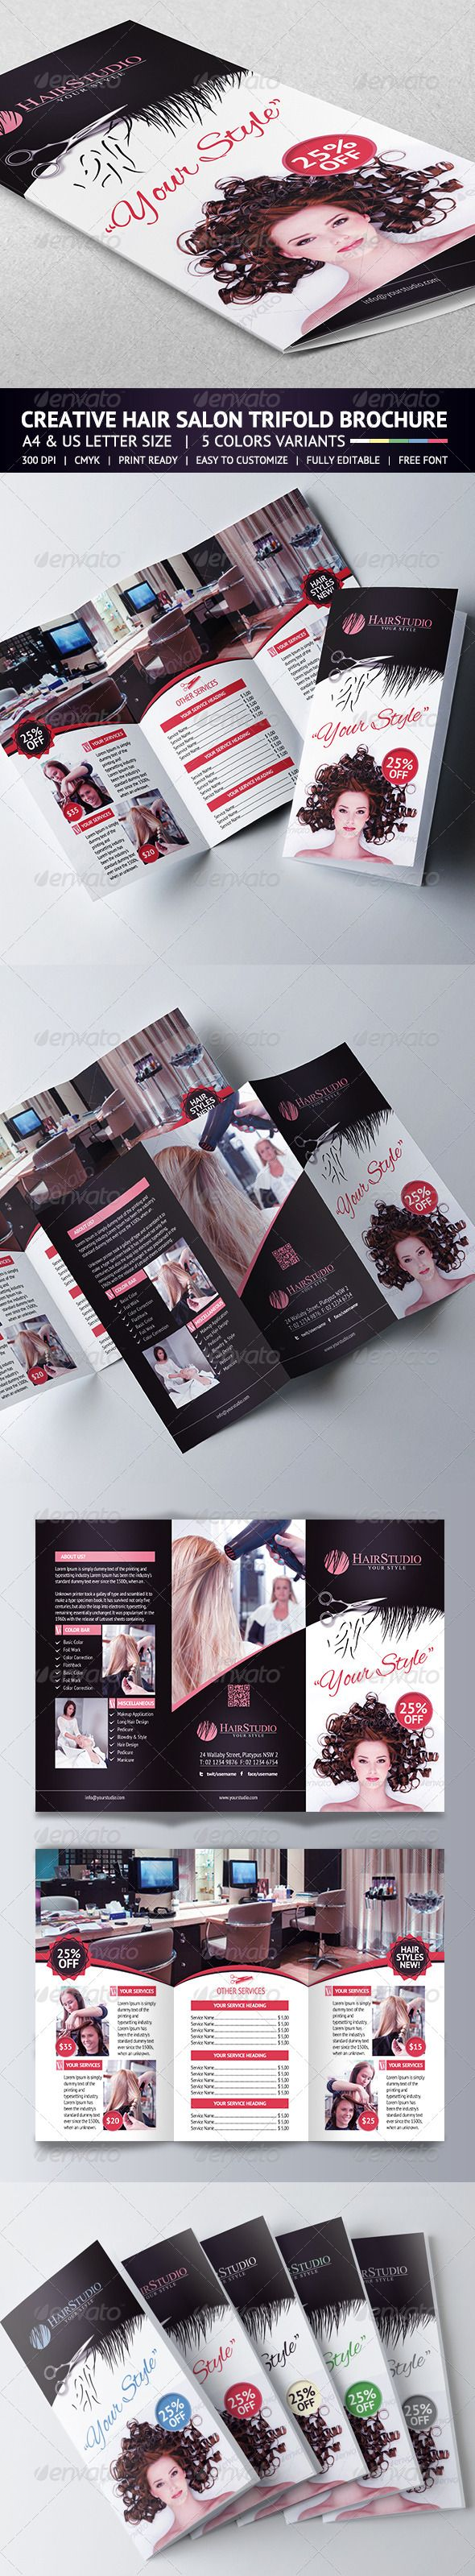 Hair Salon Trifold Brochure  Brochures A And Salons